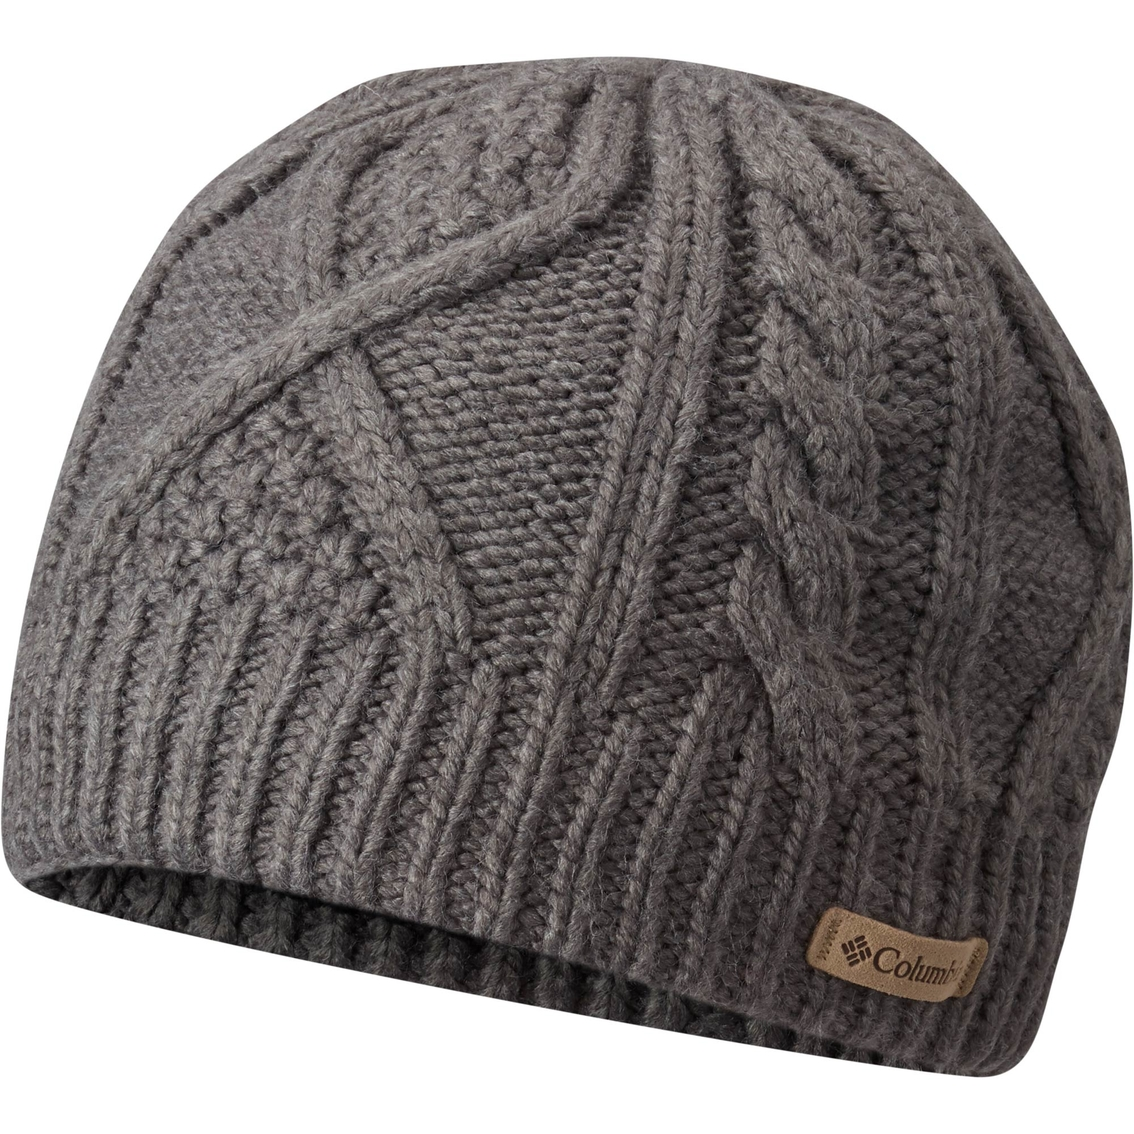 20067f1caad Columbia Cabled Cutie Beanie